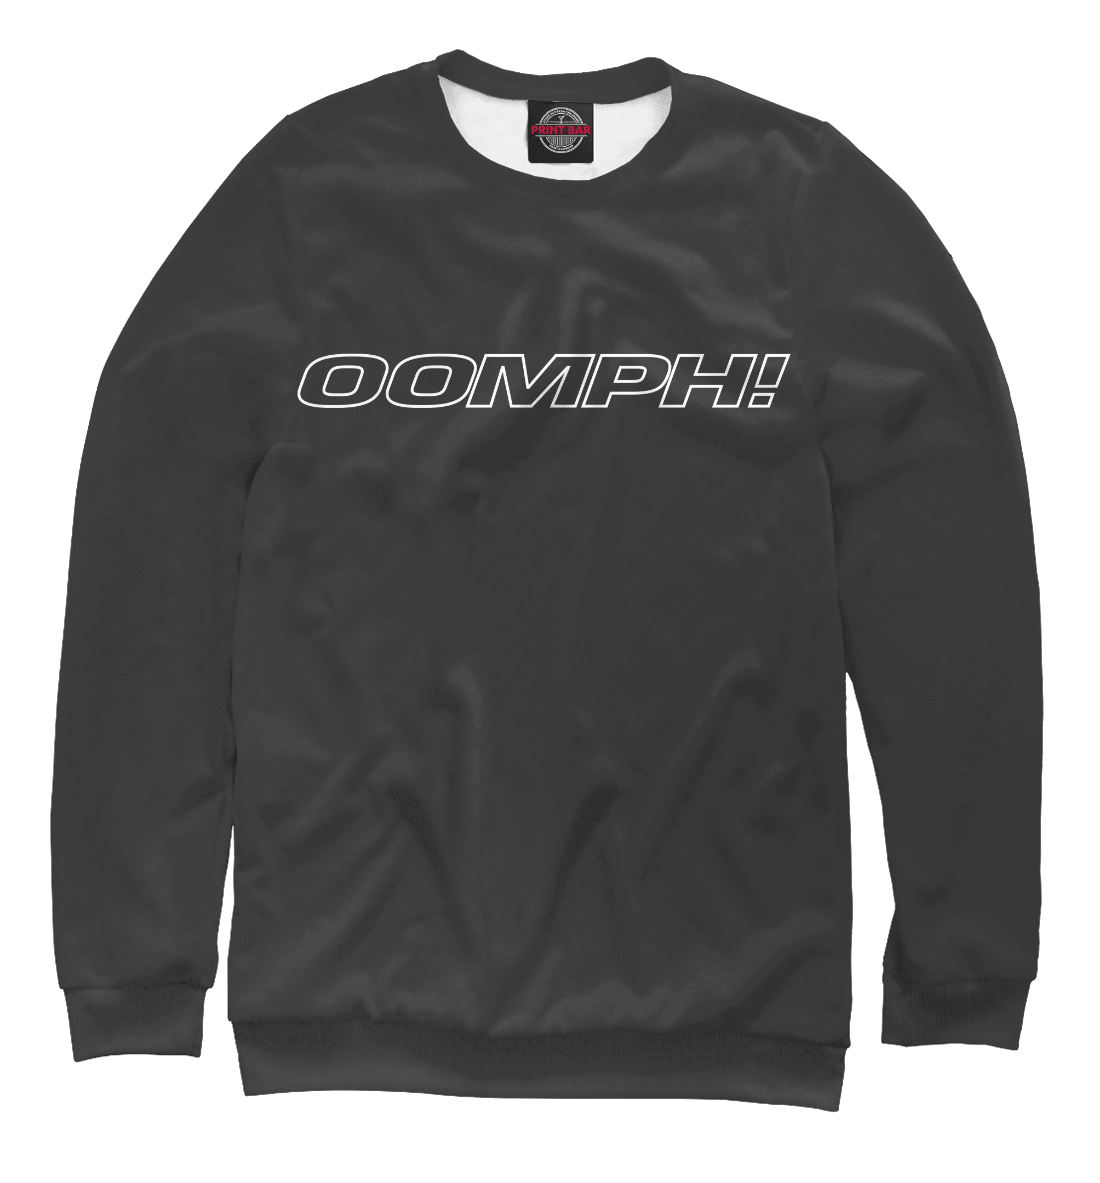 Купить Oomph!, Printbar, Свитшоты, MZK-484539-swi-1